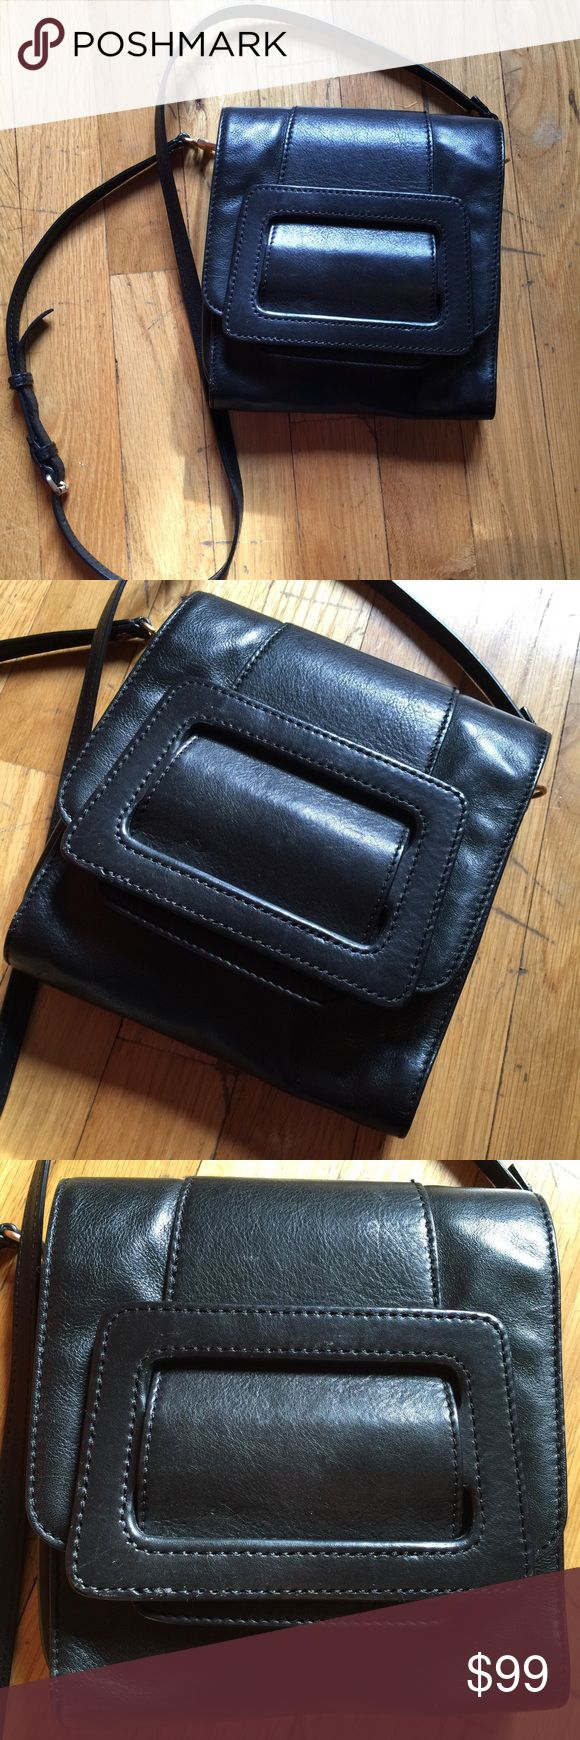 DVF Black Leather Mod Large Buckle Handbag DVF Bag stunning and is made of leather with a large buckle atop and 3 compartments inside lined and lightly worn - so cute Diane Von Furstenberg Bags